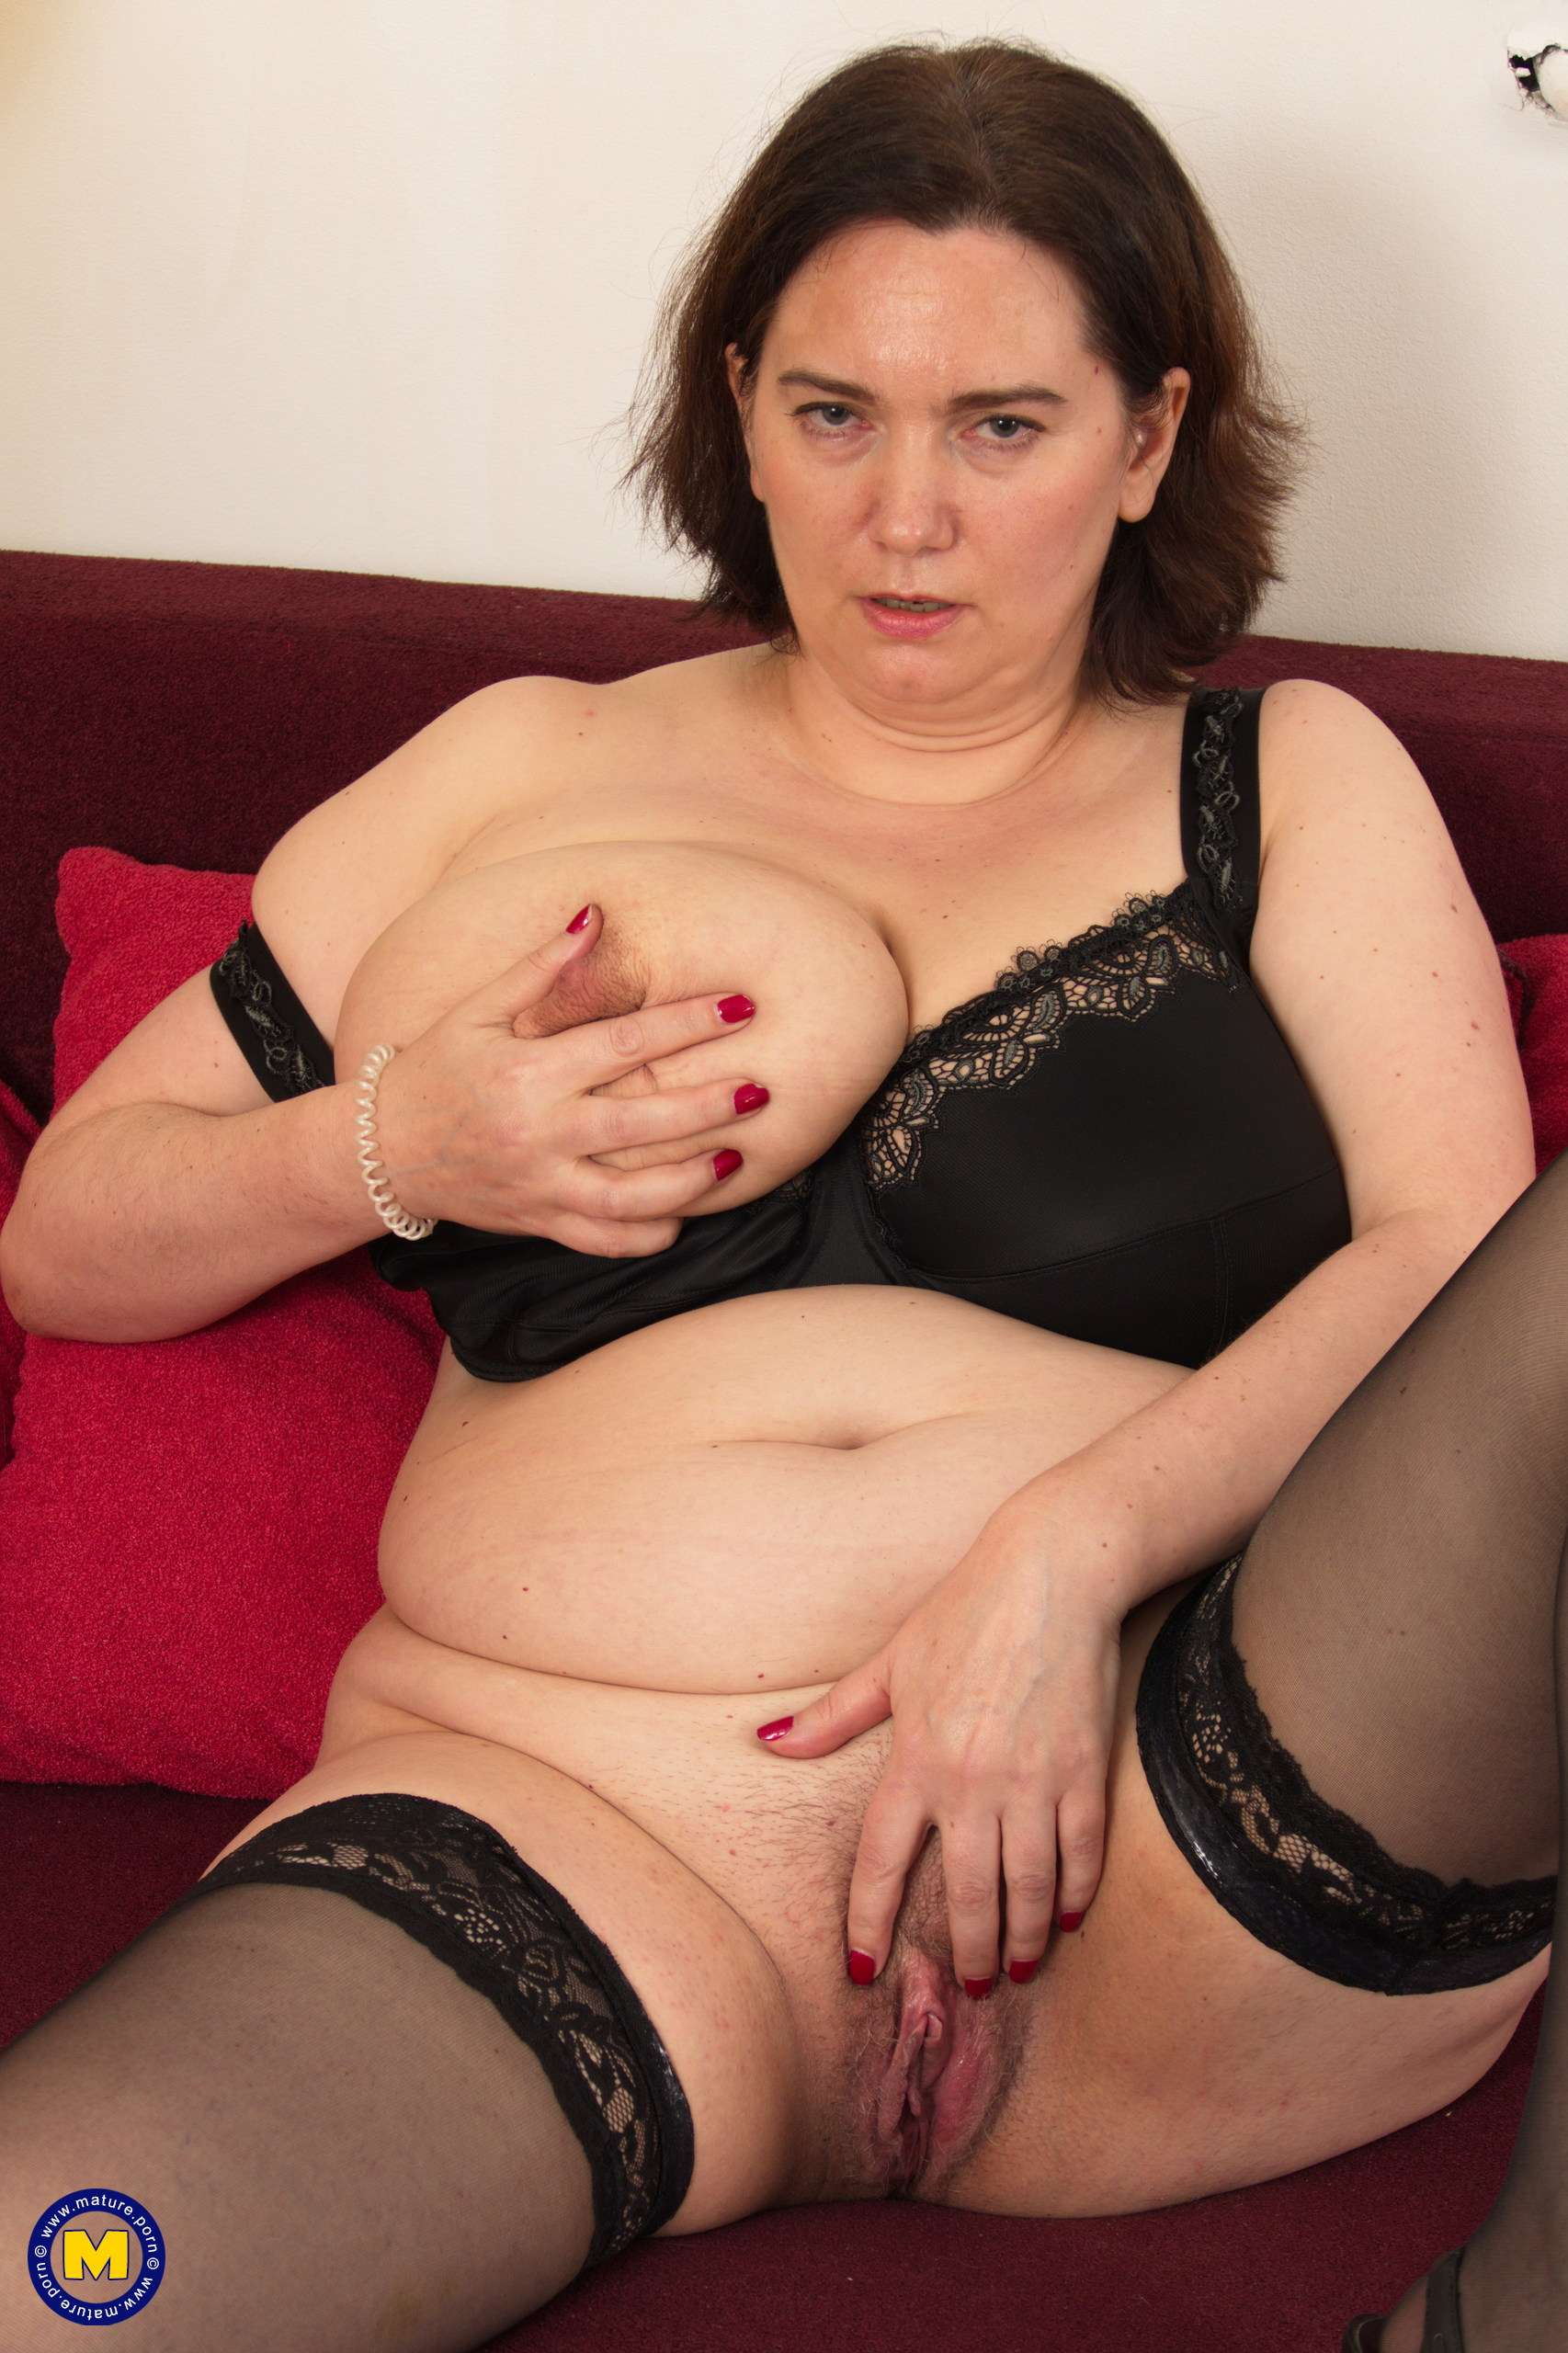 This curvy housewife loves to play alone